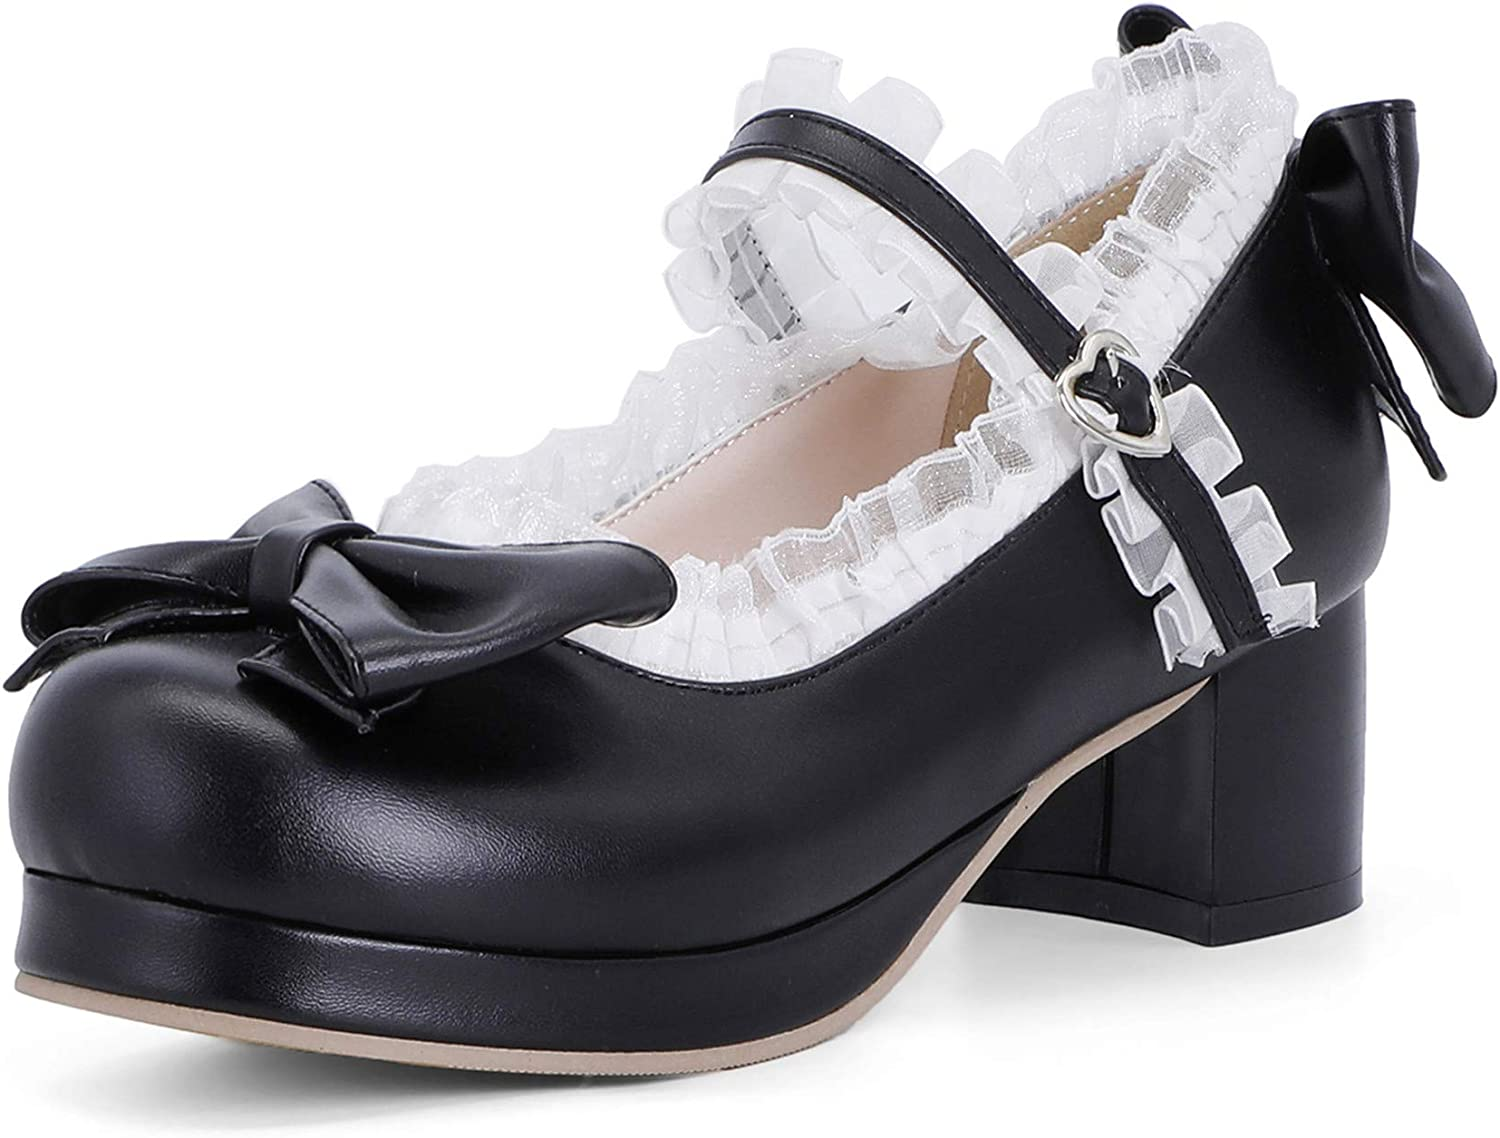 MSKFZEK Women's Cute Lolita All items free shipping Cosplay Max 68% OFF Shoes He Mid Bow Heel Chunky